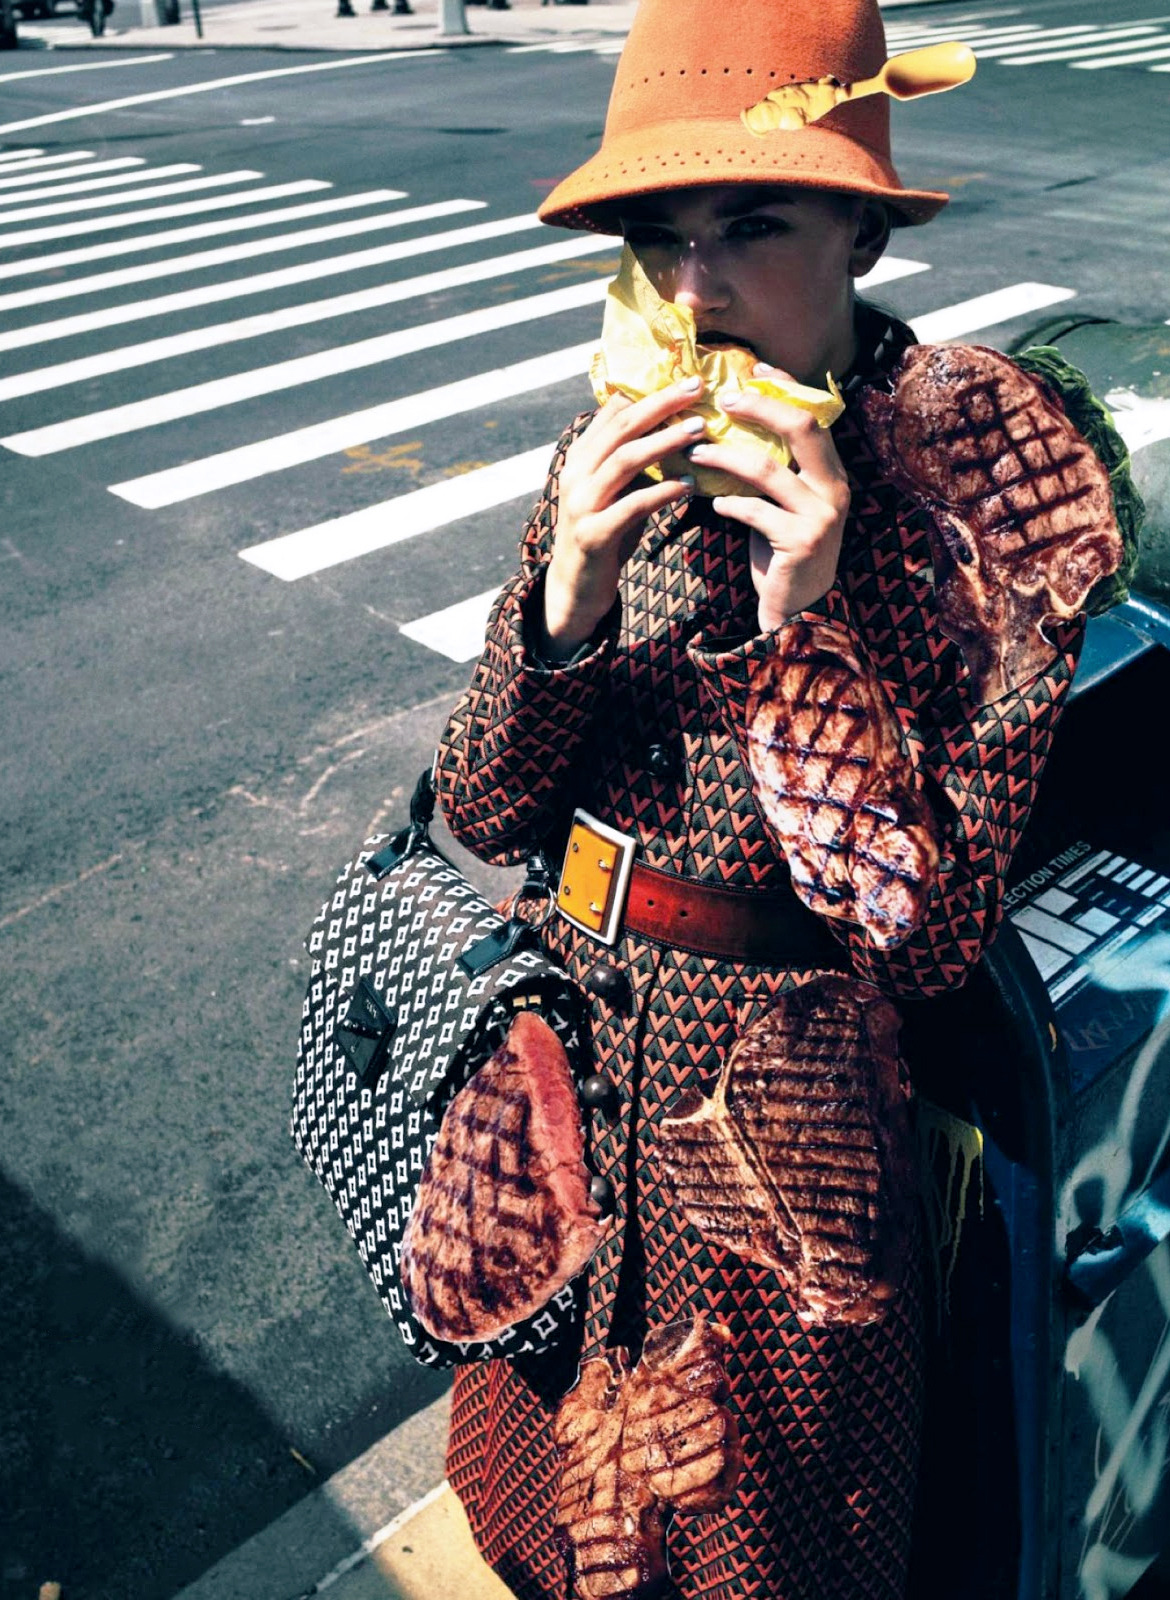 Feeding My Fashion, Bregje Heinen by Cedric Buchet for Vogue Japan December 2012.